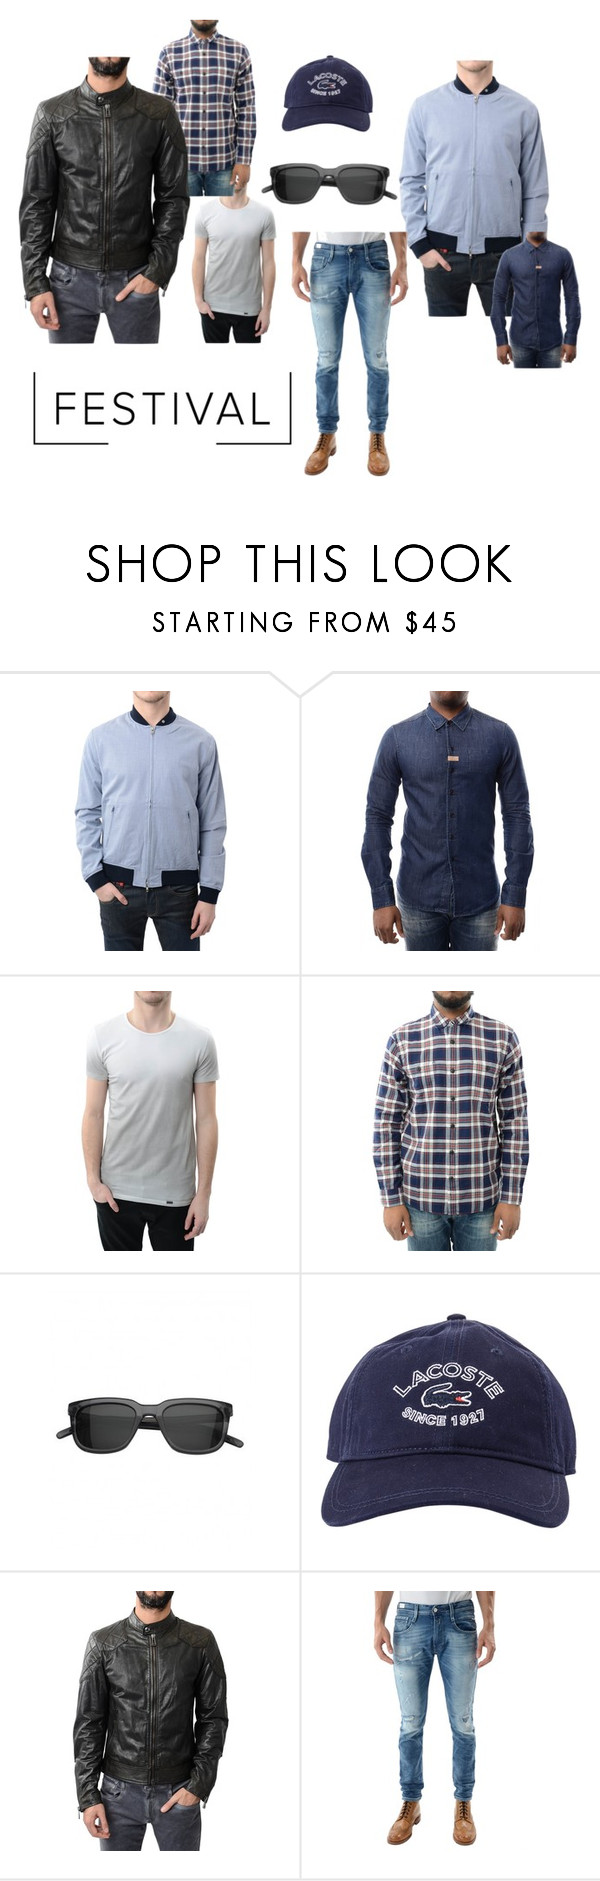 """""""Festival"""" by accentclothing ❤ liked on Polyvore featuring Peter Werth, Lacoste, Belstaff, men's fashion and menswear"""